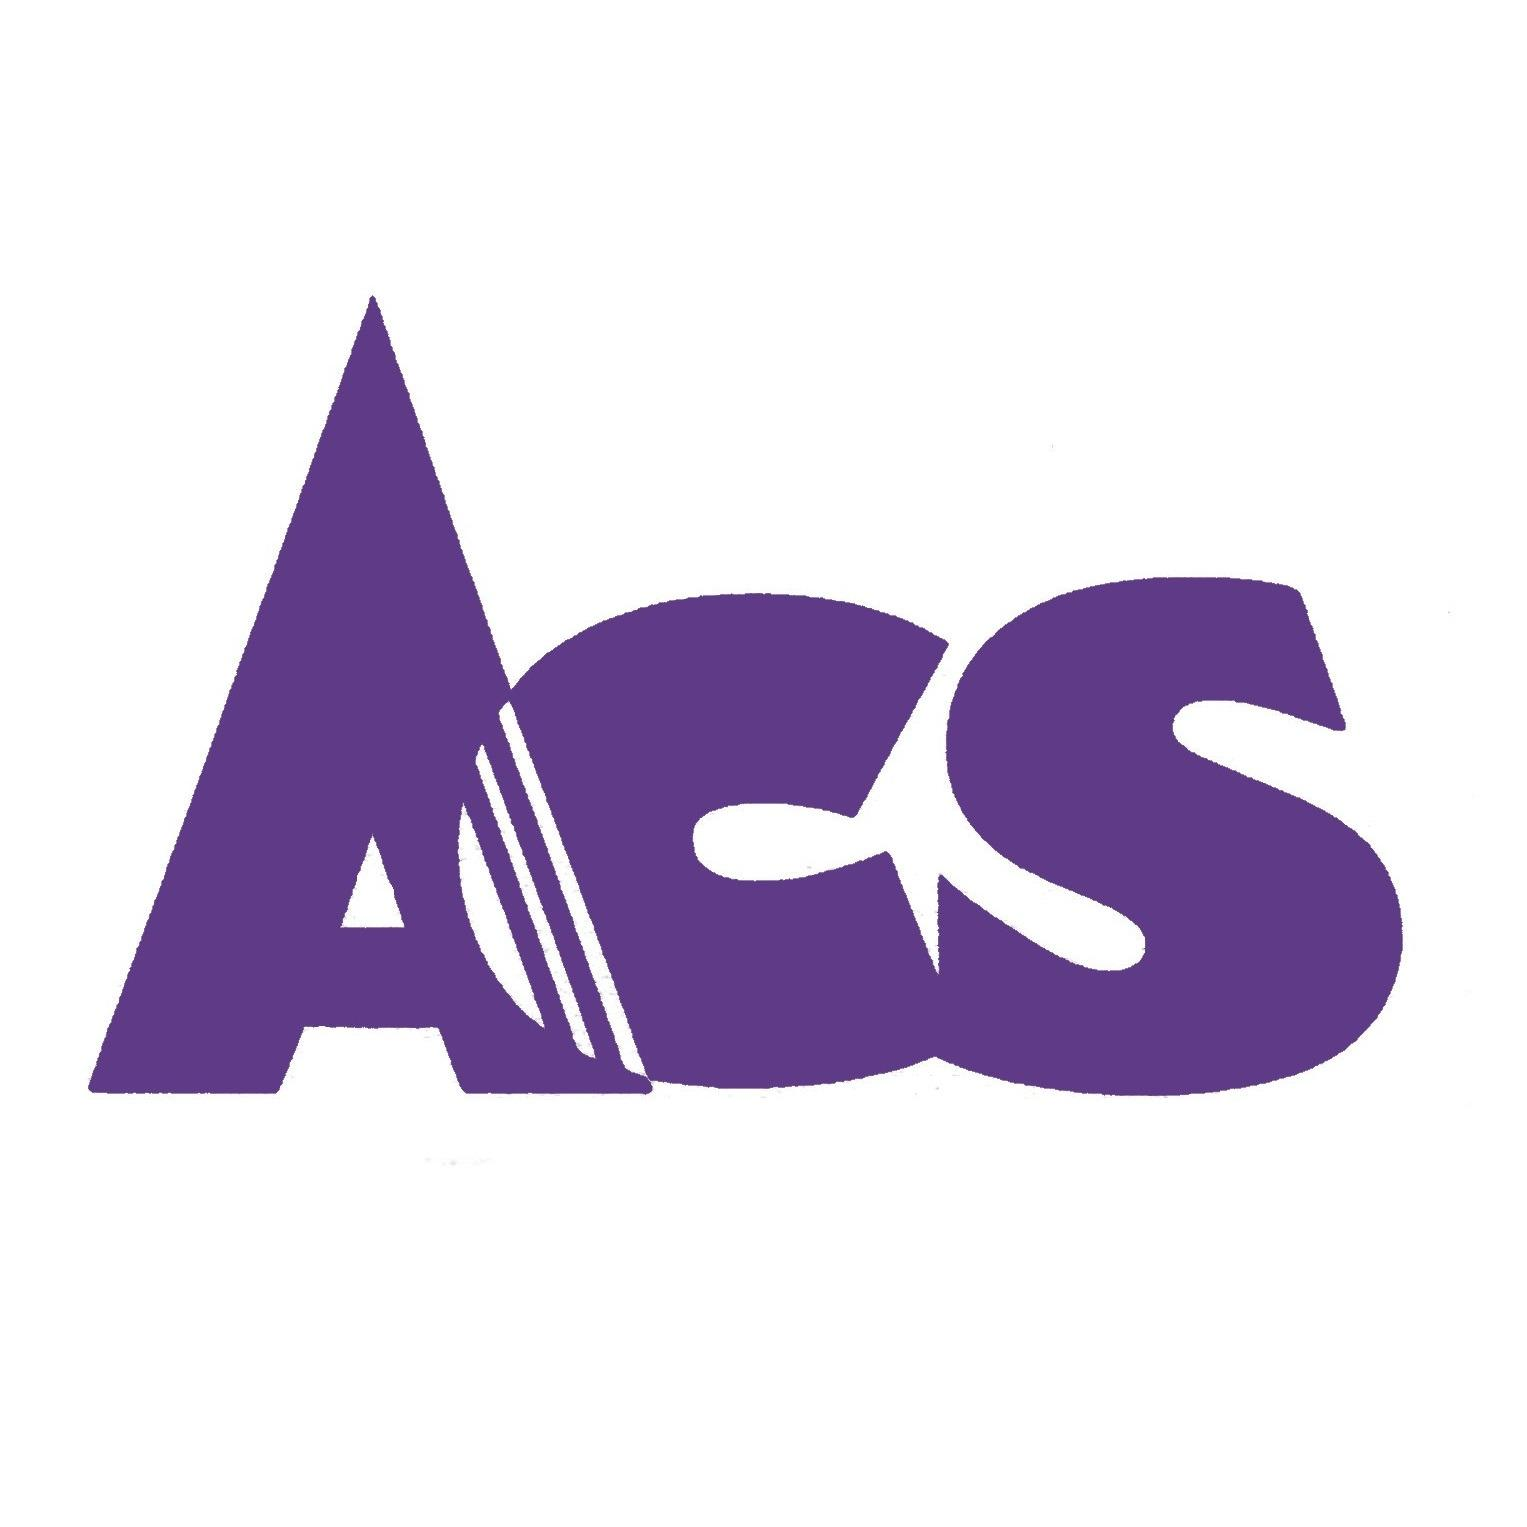 ACS Abfall- & Containerservice GmbH